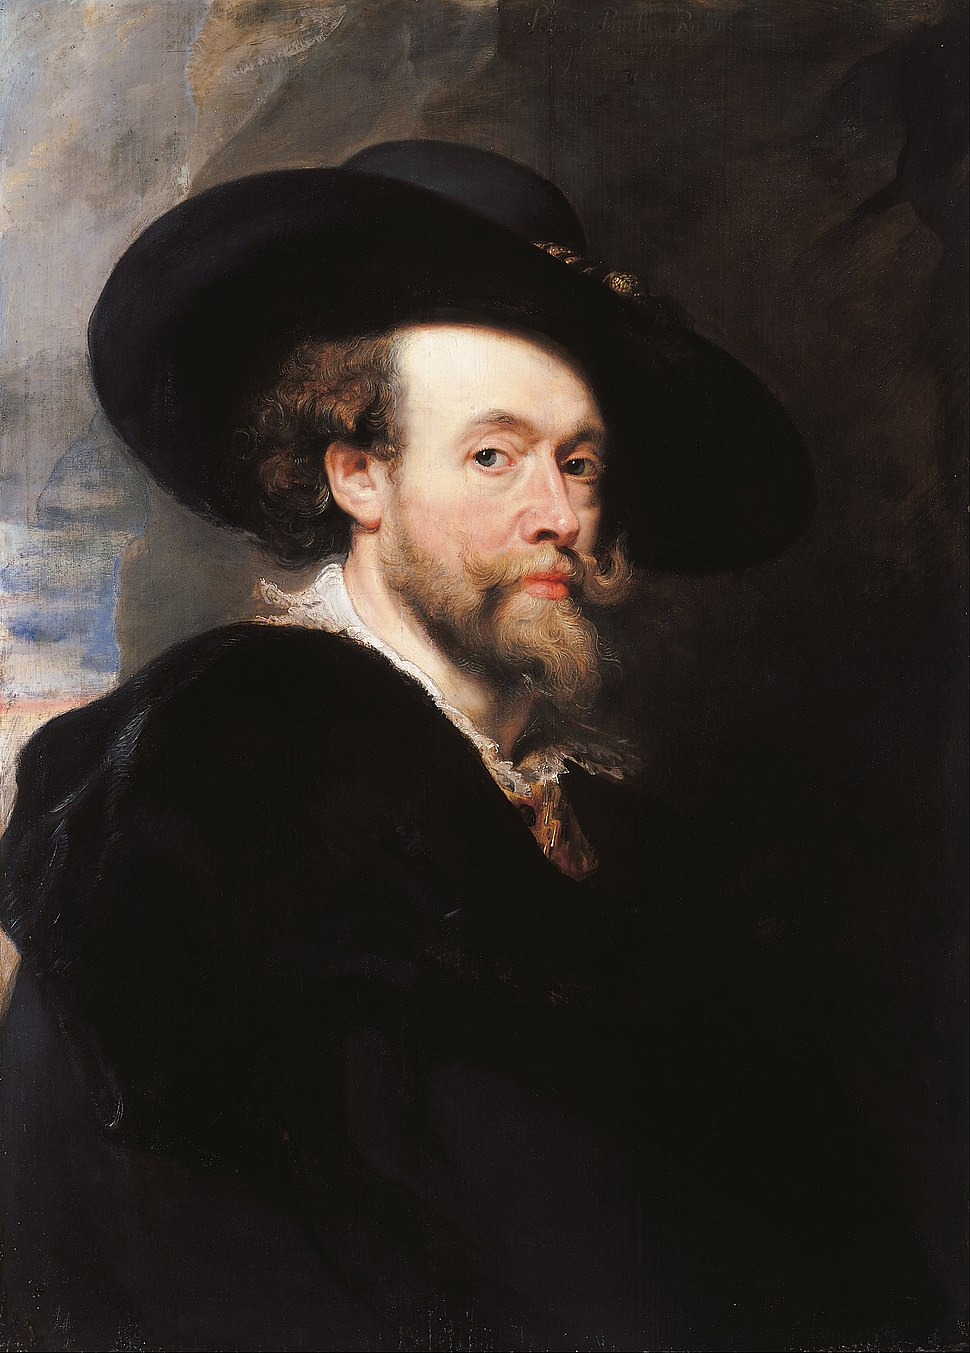 970px-Sir_Peter_Paul_Rubens_-_Portrait_of_the_Artist_-_Google_Art_Project.jpg